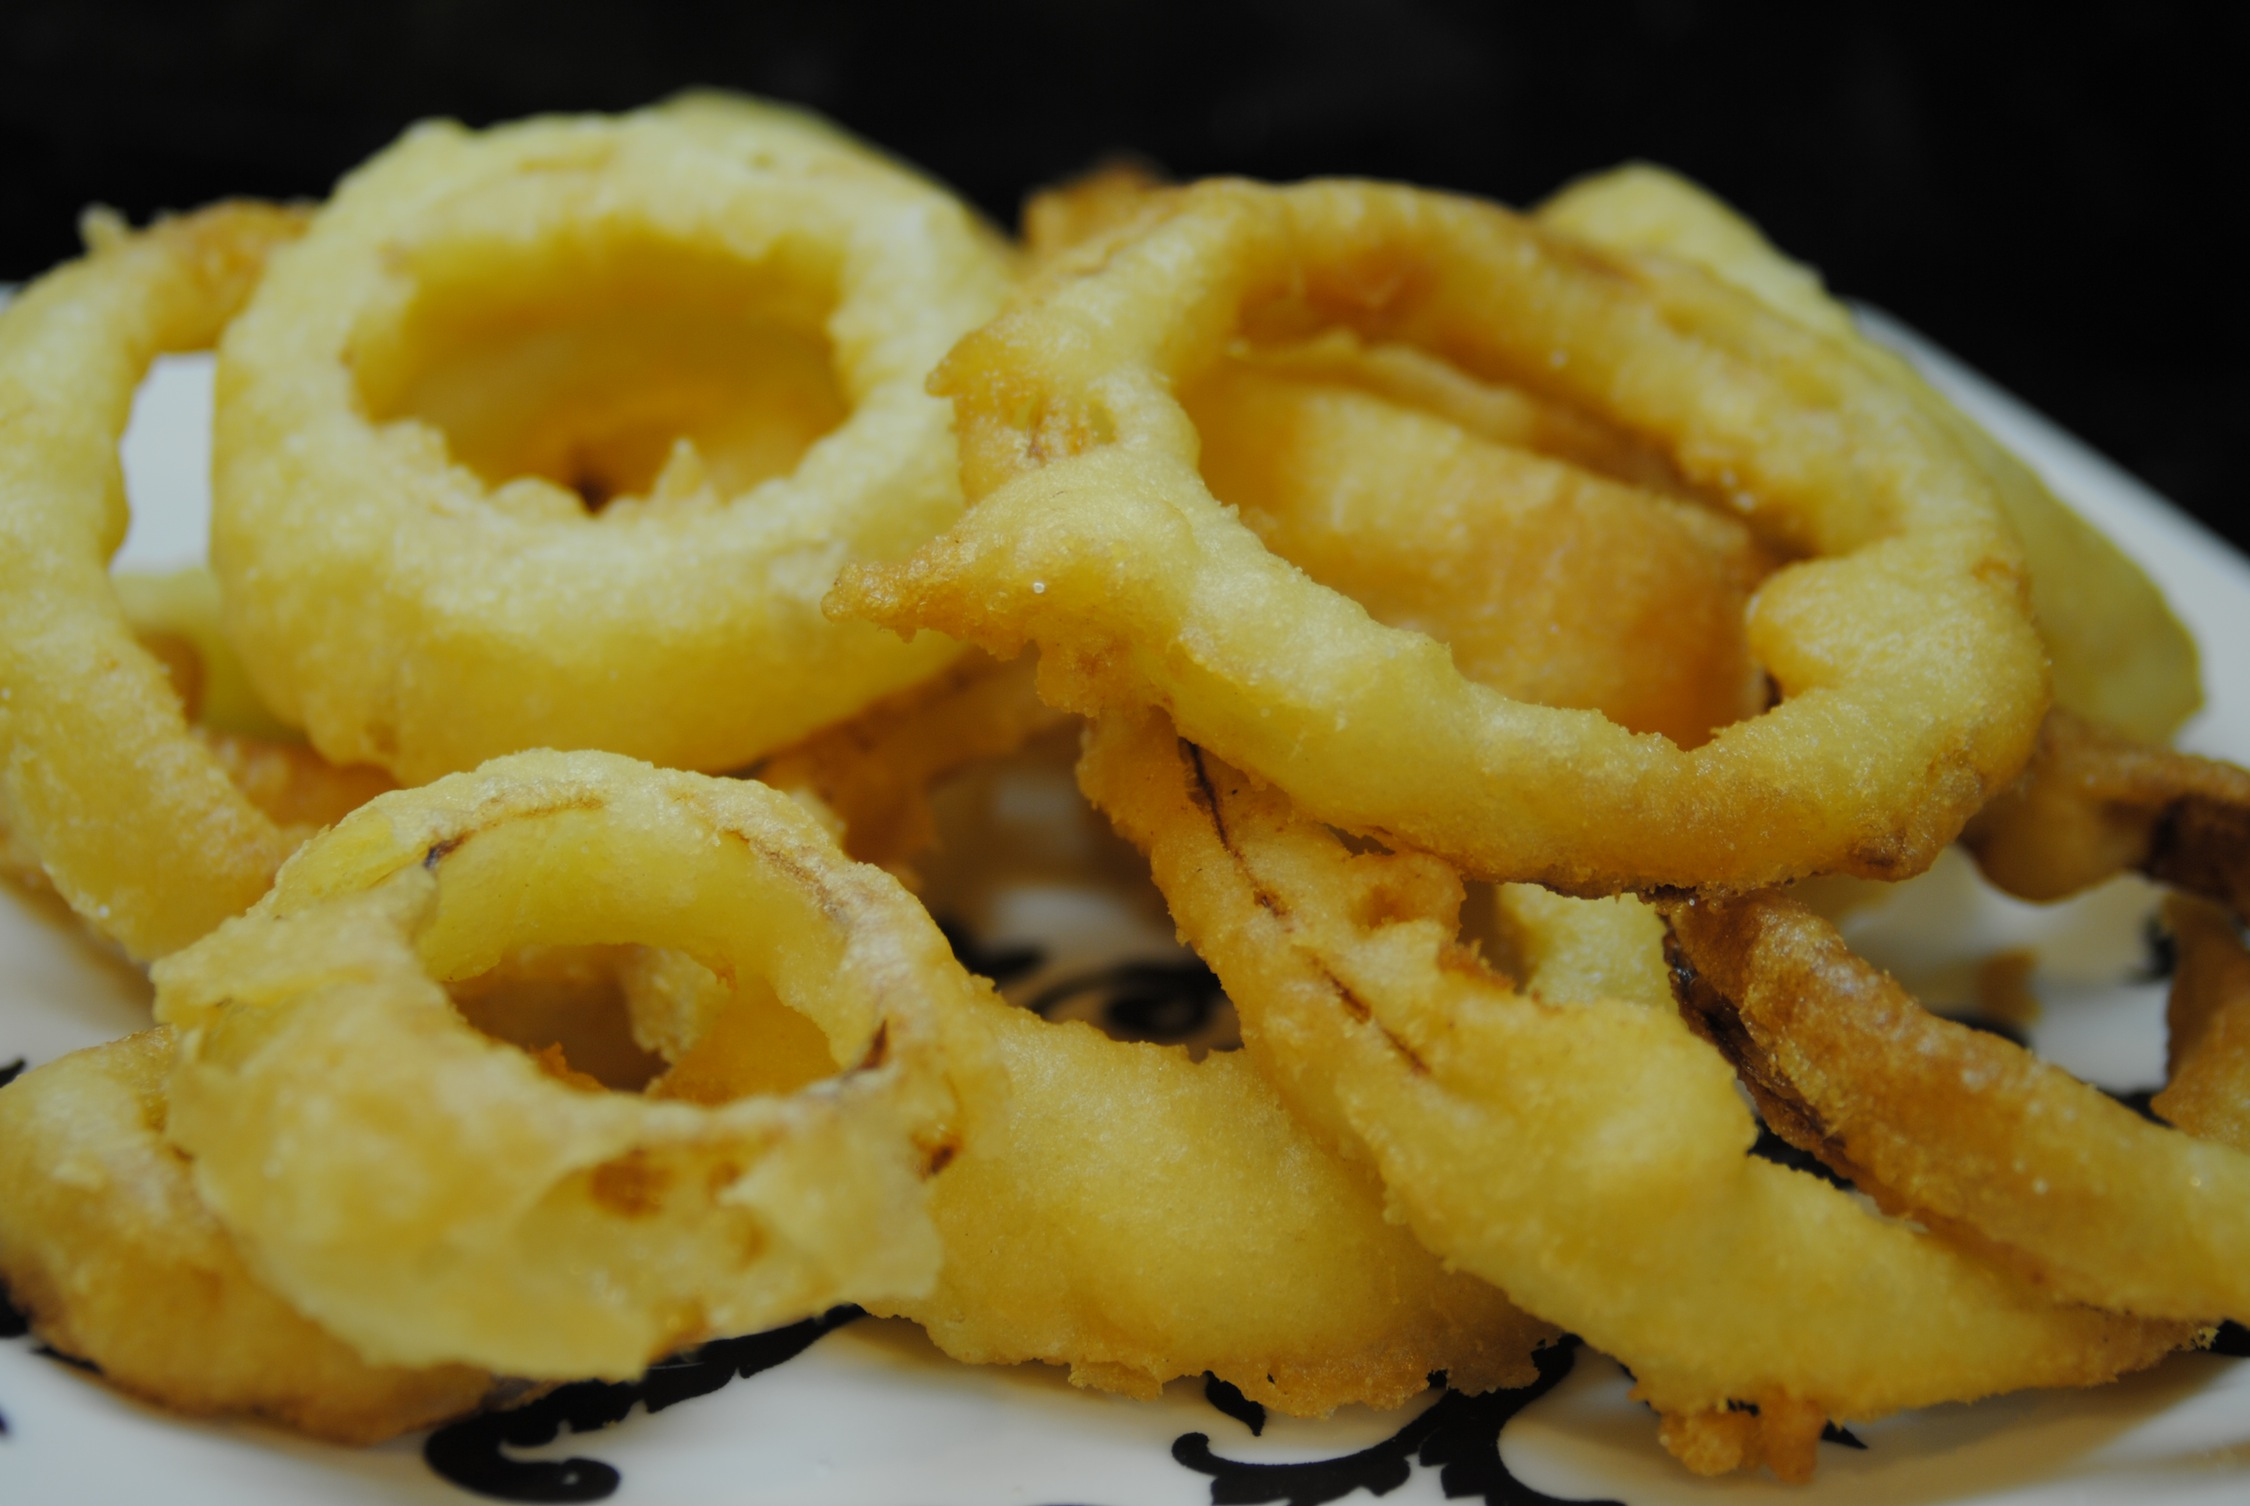 ... Panko Crusted Catfish & Beer Battered Onion Rings - $10 buck dinners